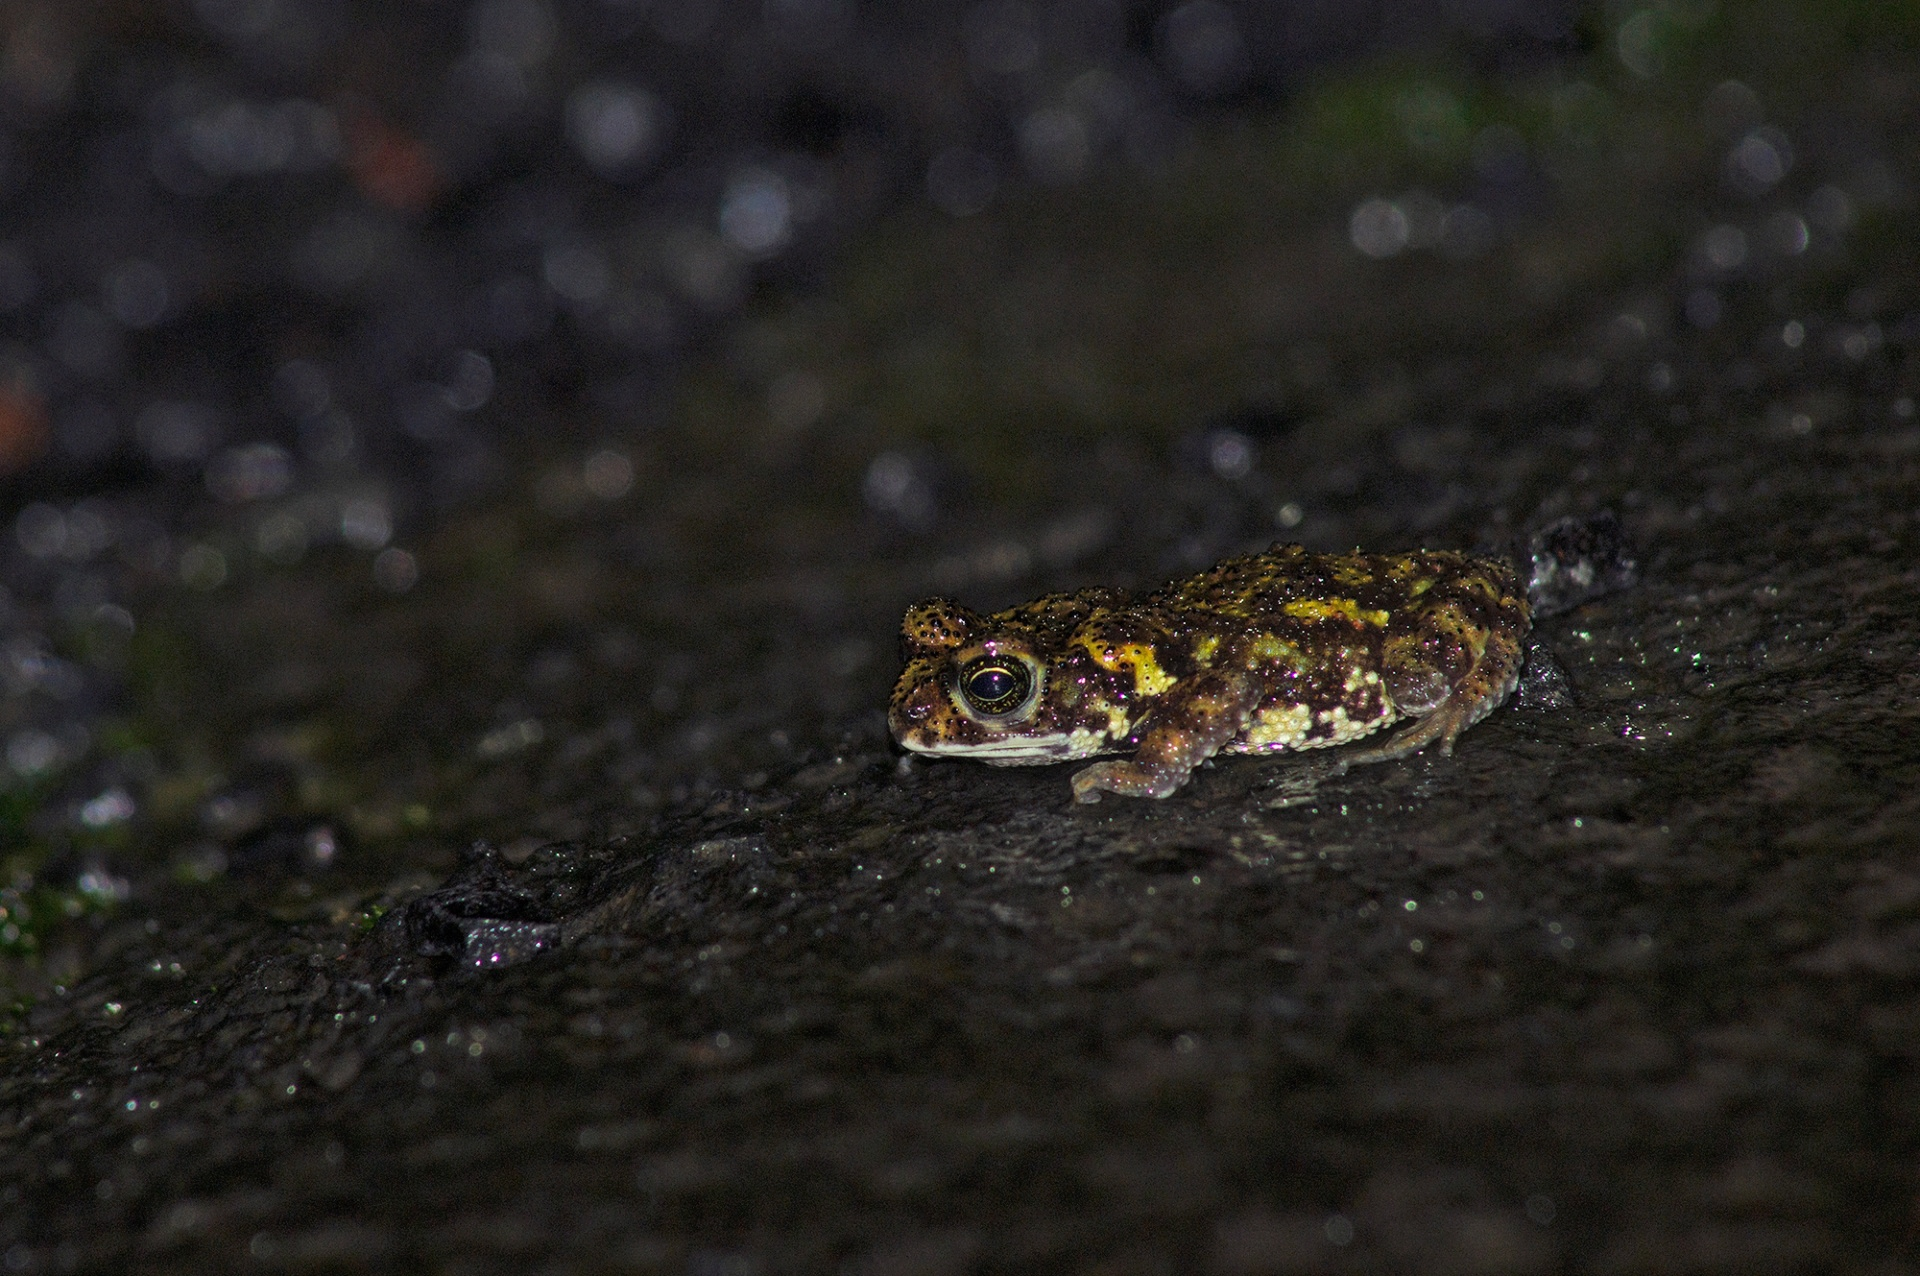 The Amboli tiger toad (Xanthophryne tigerina) gets its name from its unique coloration seen in the breeding season. It is similar to the big cat, which anecdotal reports suggest also inhabit these forests. There are only two species that belong to this ancient genus, both found only in Maharashtra (its sister species, the Koyna toad occurs in the Koyna Wildlife Sanctuary, Satara).